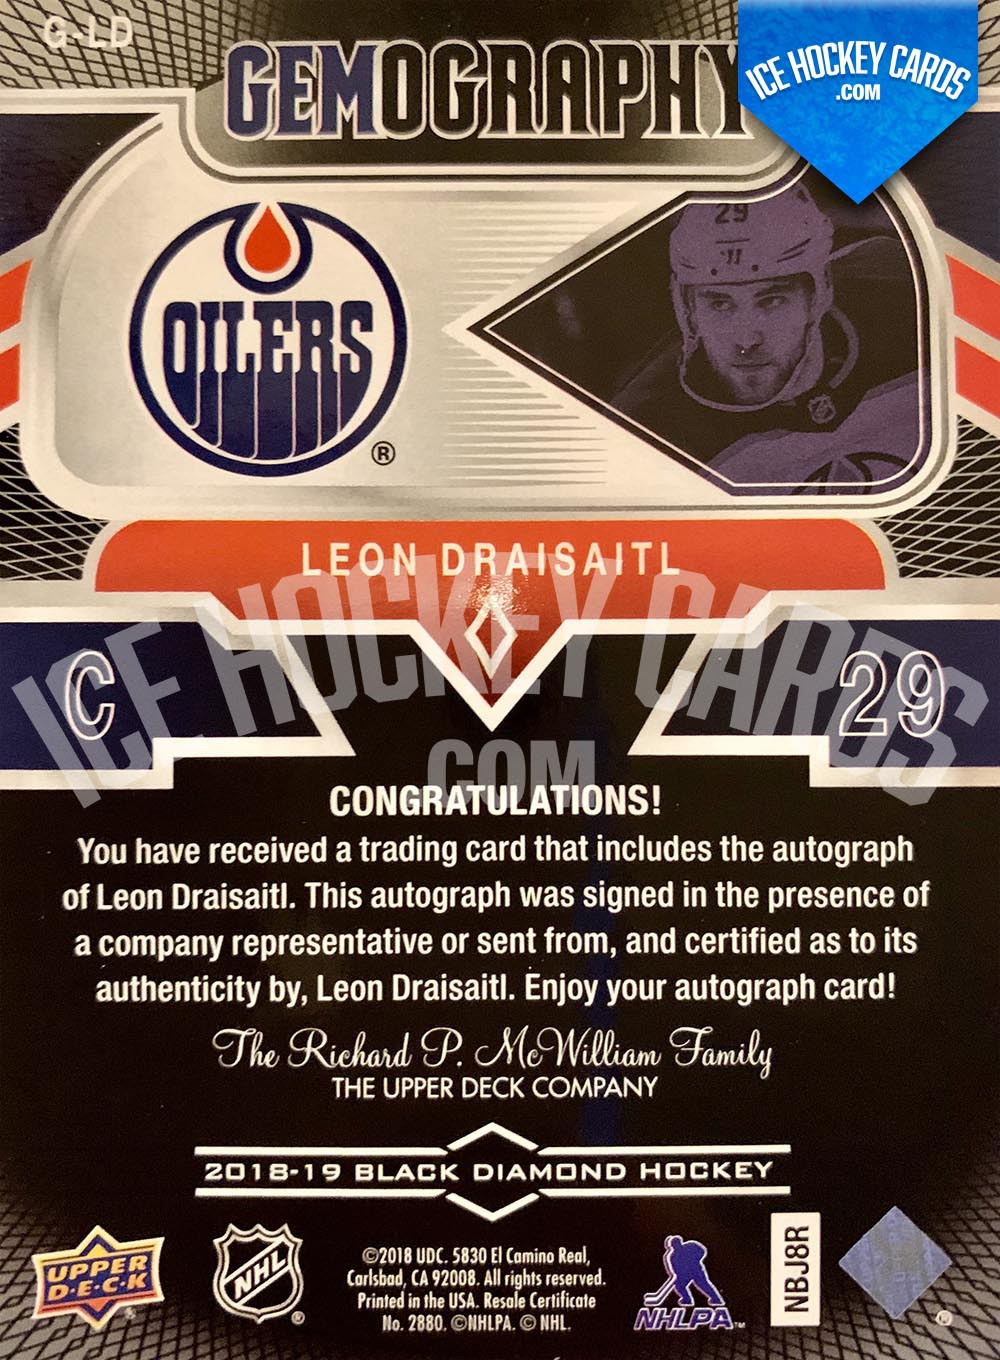 Upper Deck - Black Diamond 2018-19 - Leon Draisaitl Gemography Autograph - 2nd Card back